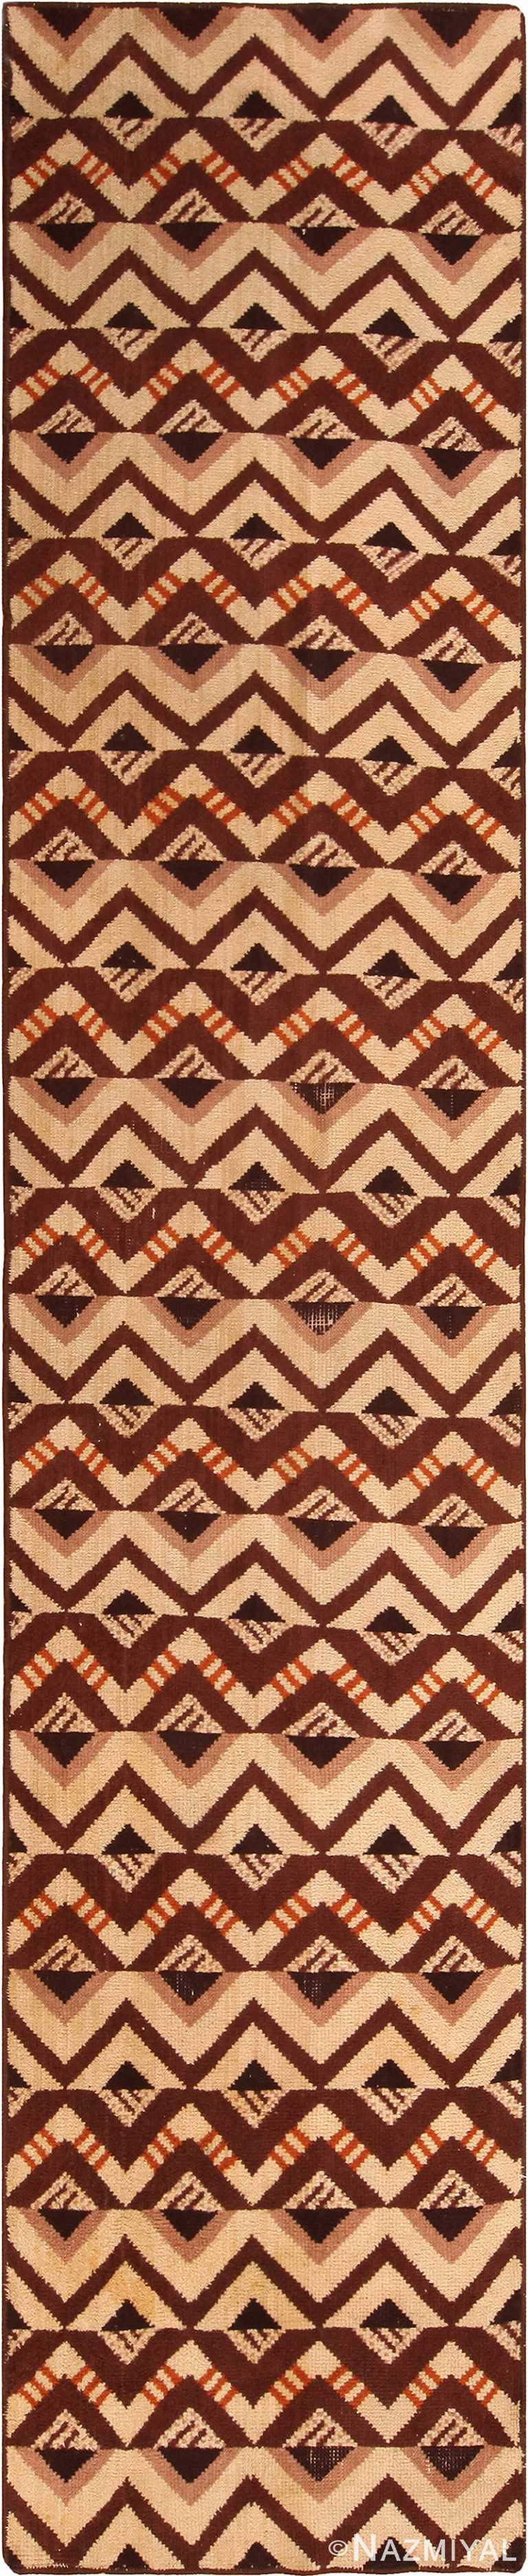 Geometric Vintage French Art Deco Runner Rug 70969 by Nazmiyal Antique Rugs